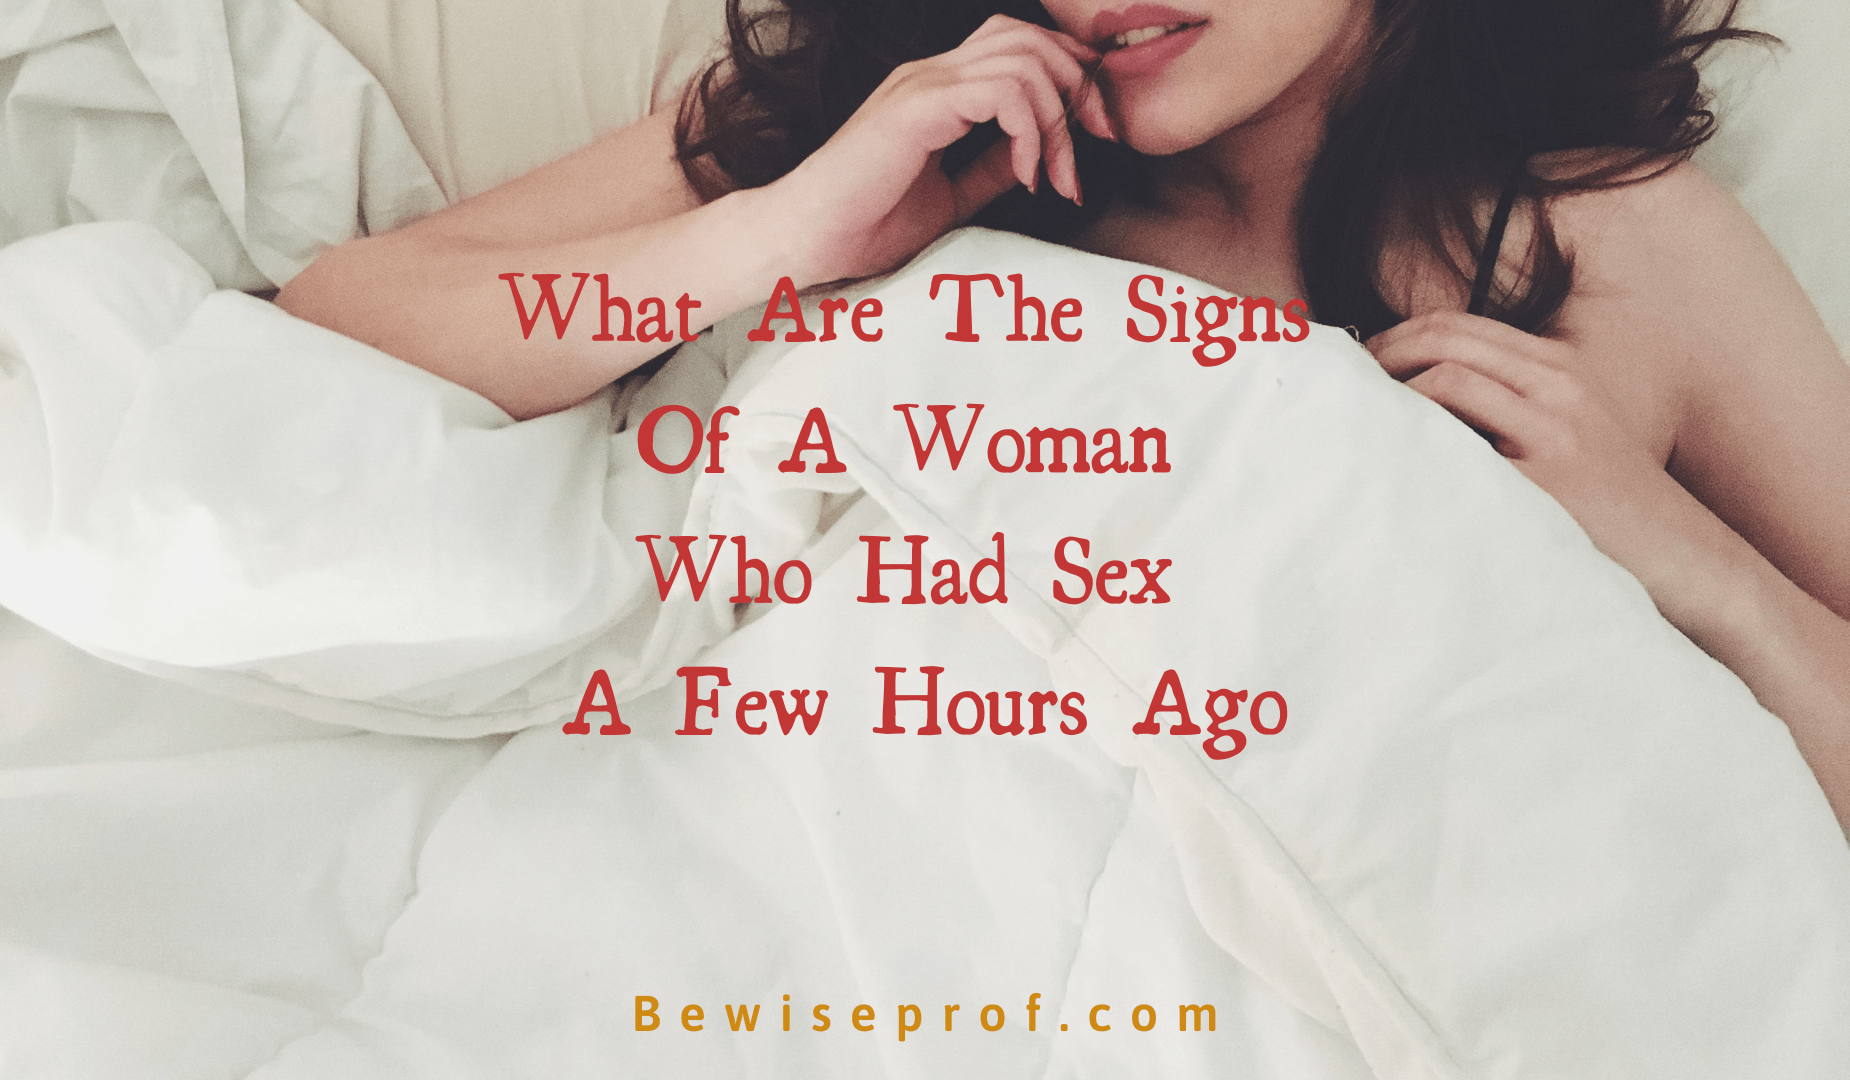 What Are The Signs Of A Woman Who Had Sex A Few Hours Ago